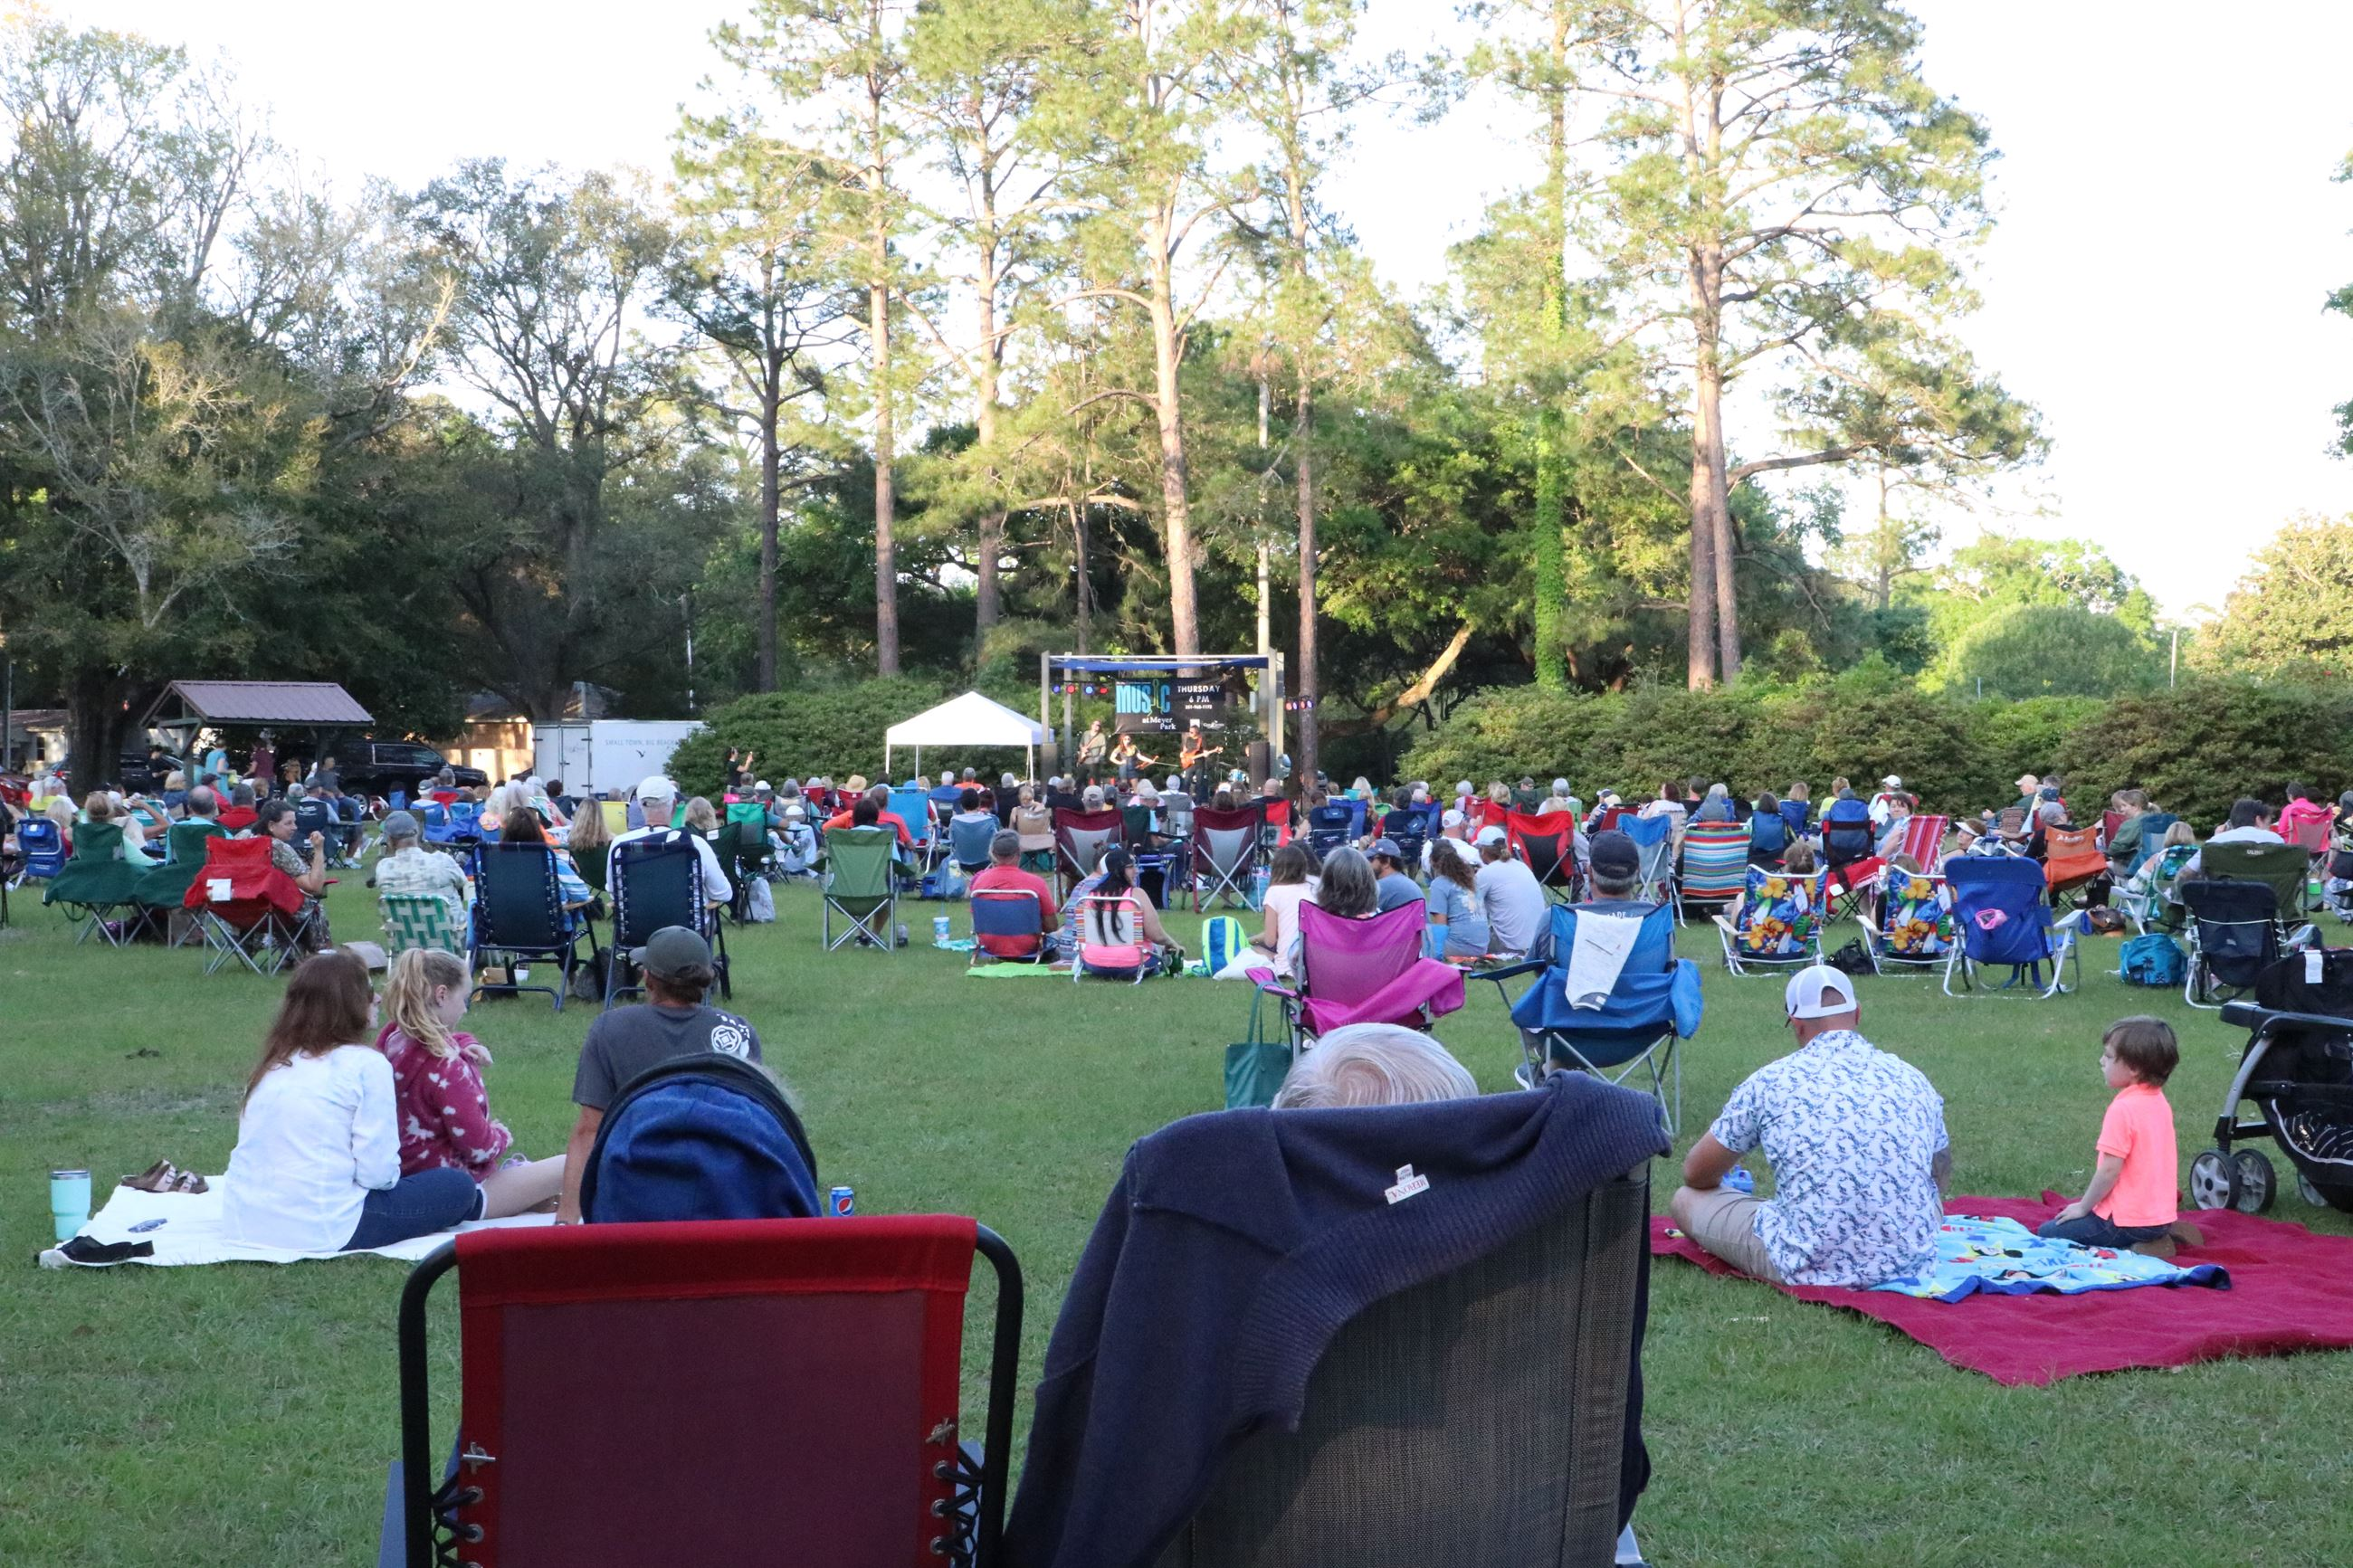 photo of the crowd at Music at Meyer Park